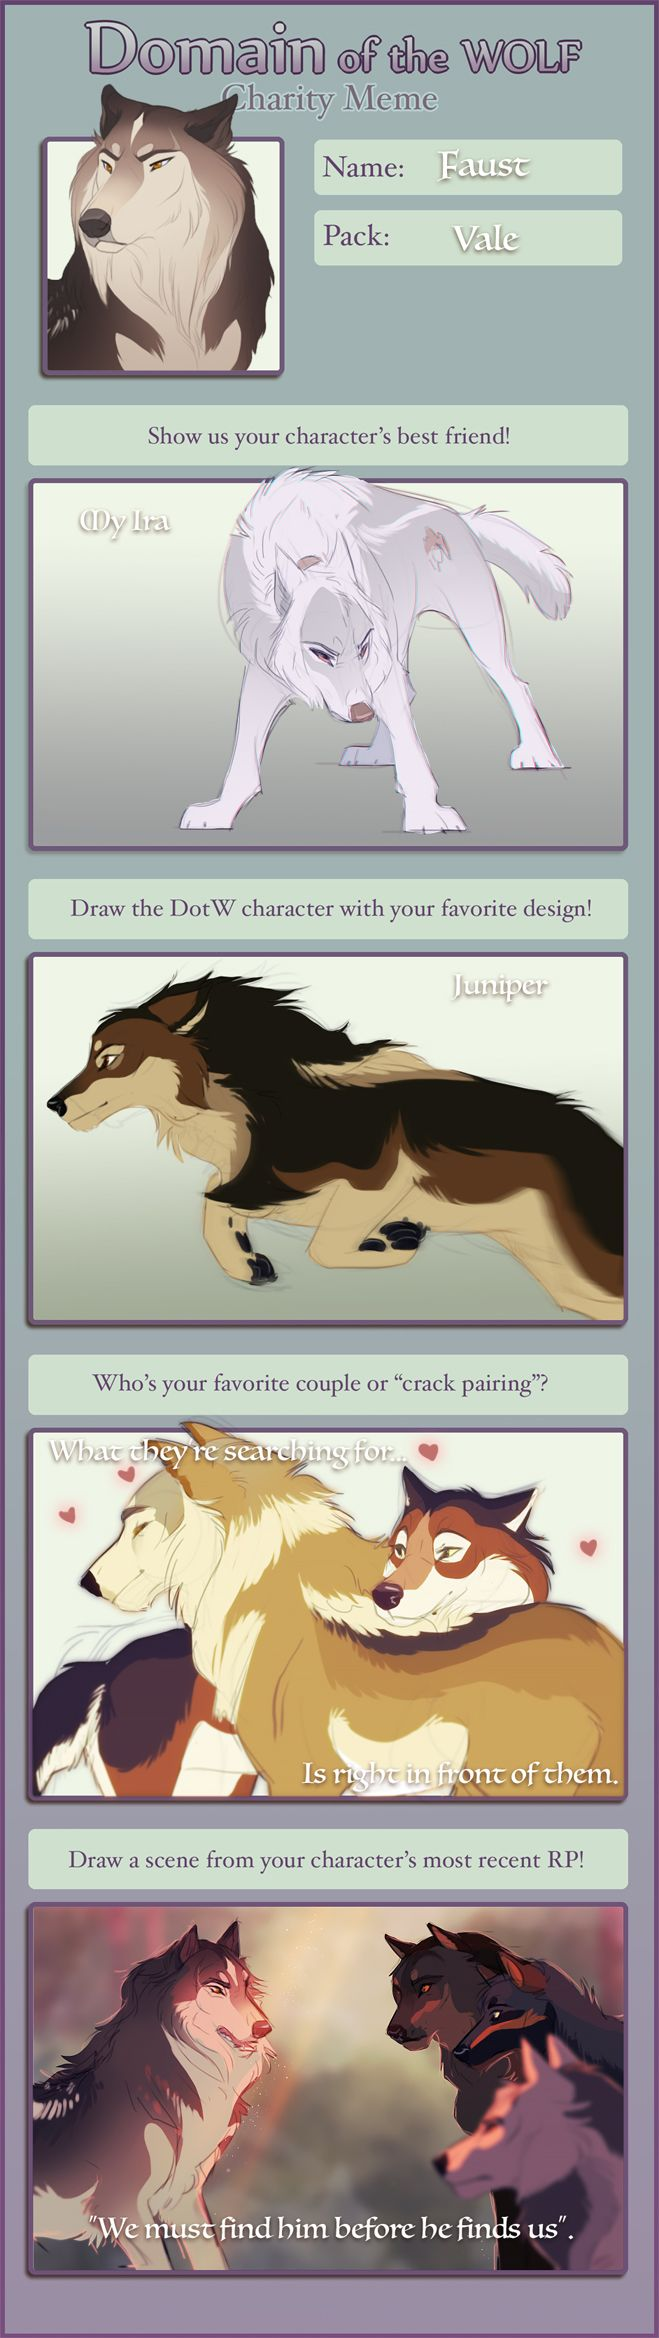 Best 25 cartoon wolf ideas on pinterest how to draw wolf how best 25 cartoon wolf ideas on pinterest how to draw wolf how to draw dogs and wolf character ccuart Choice Image